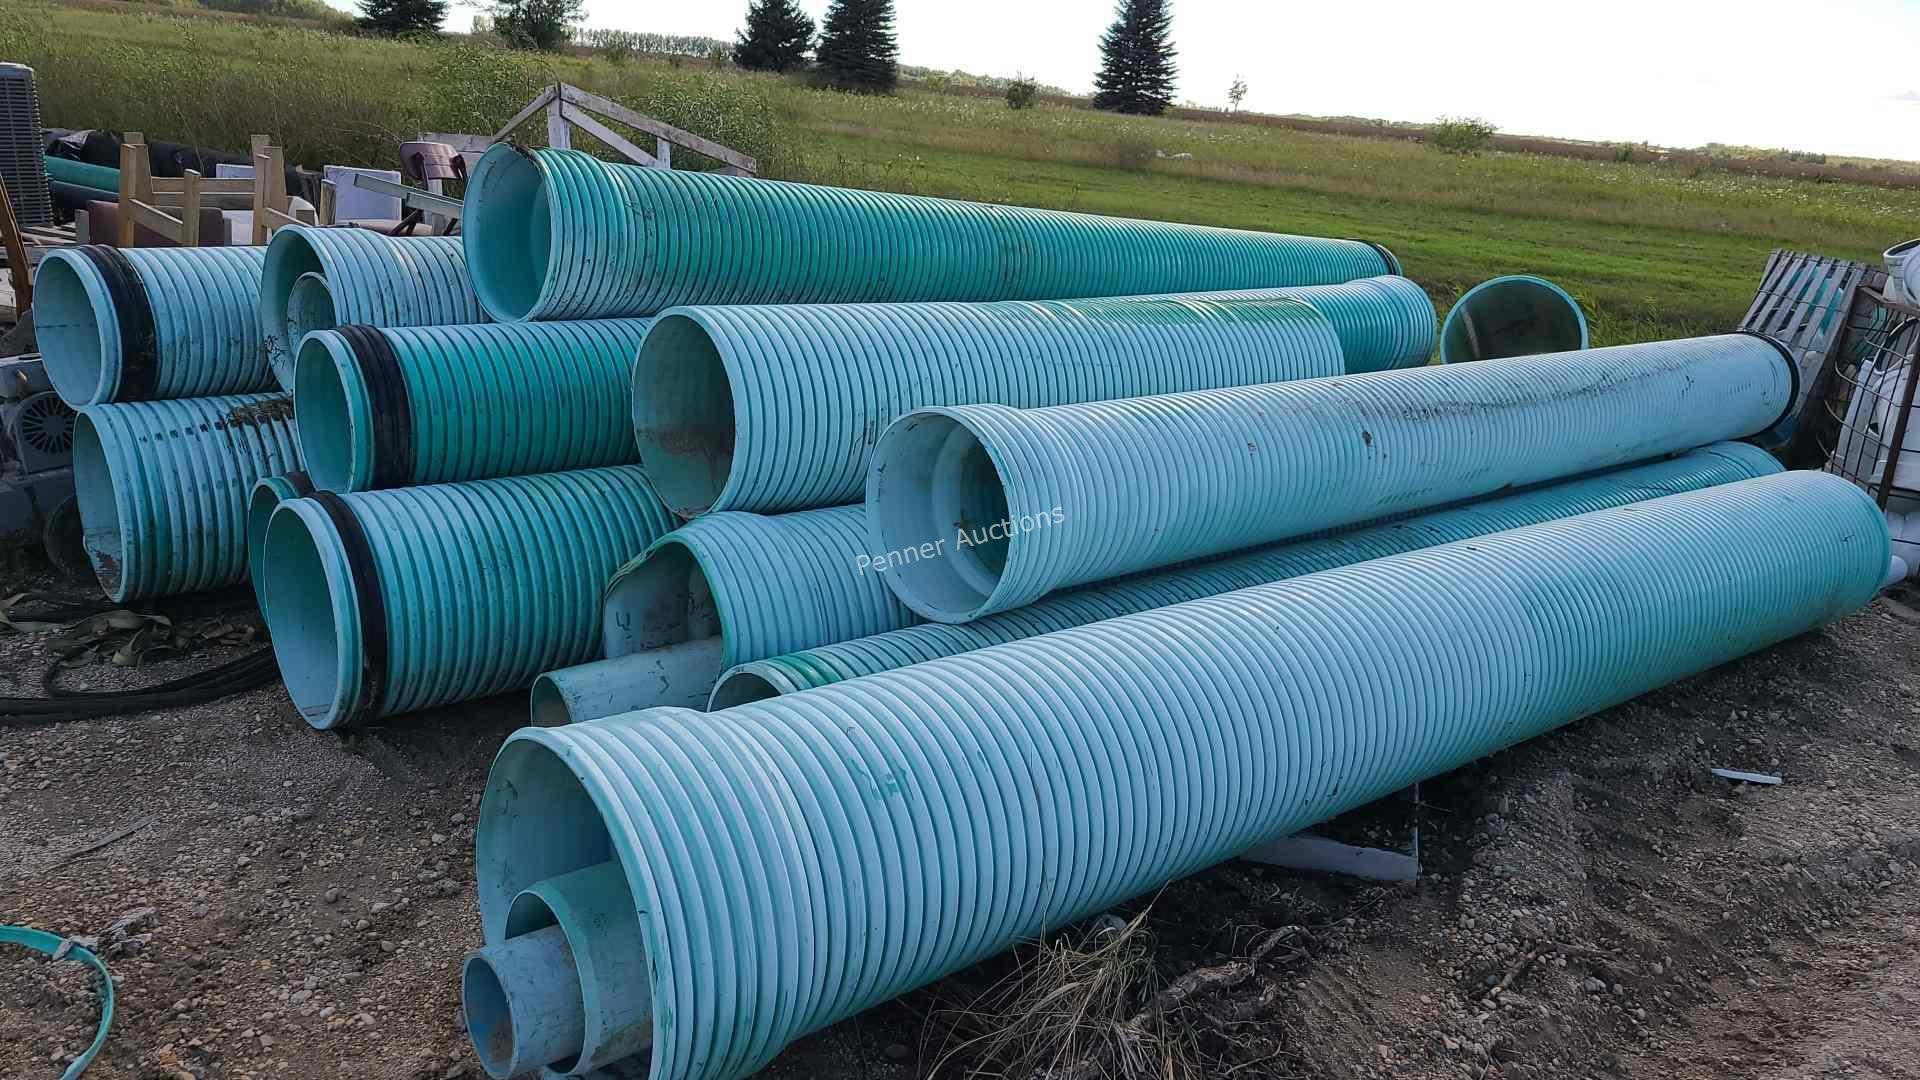 Qty 13ft Sewer Pipe, Some Shorter Pieces